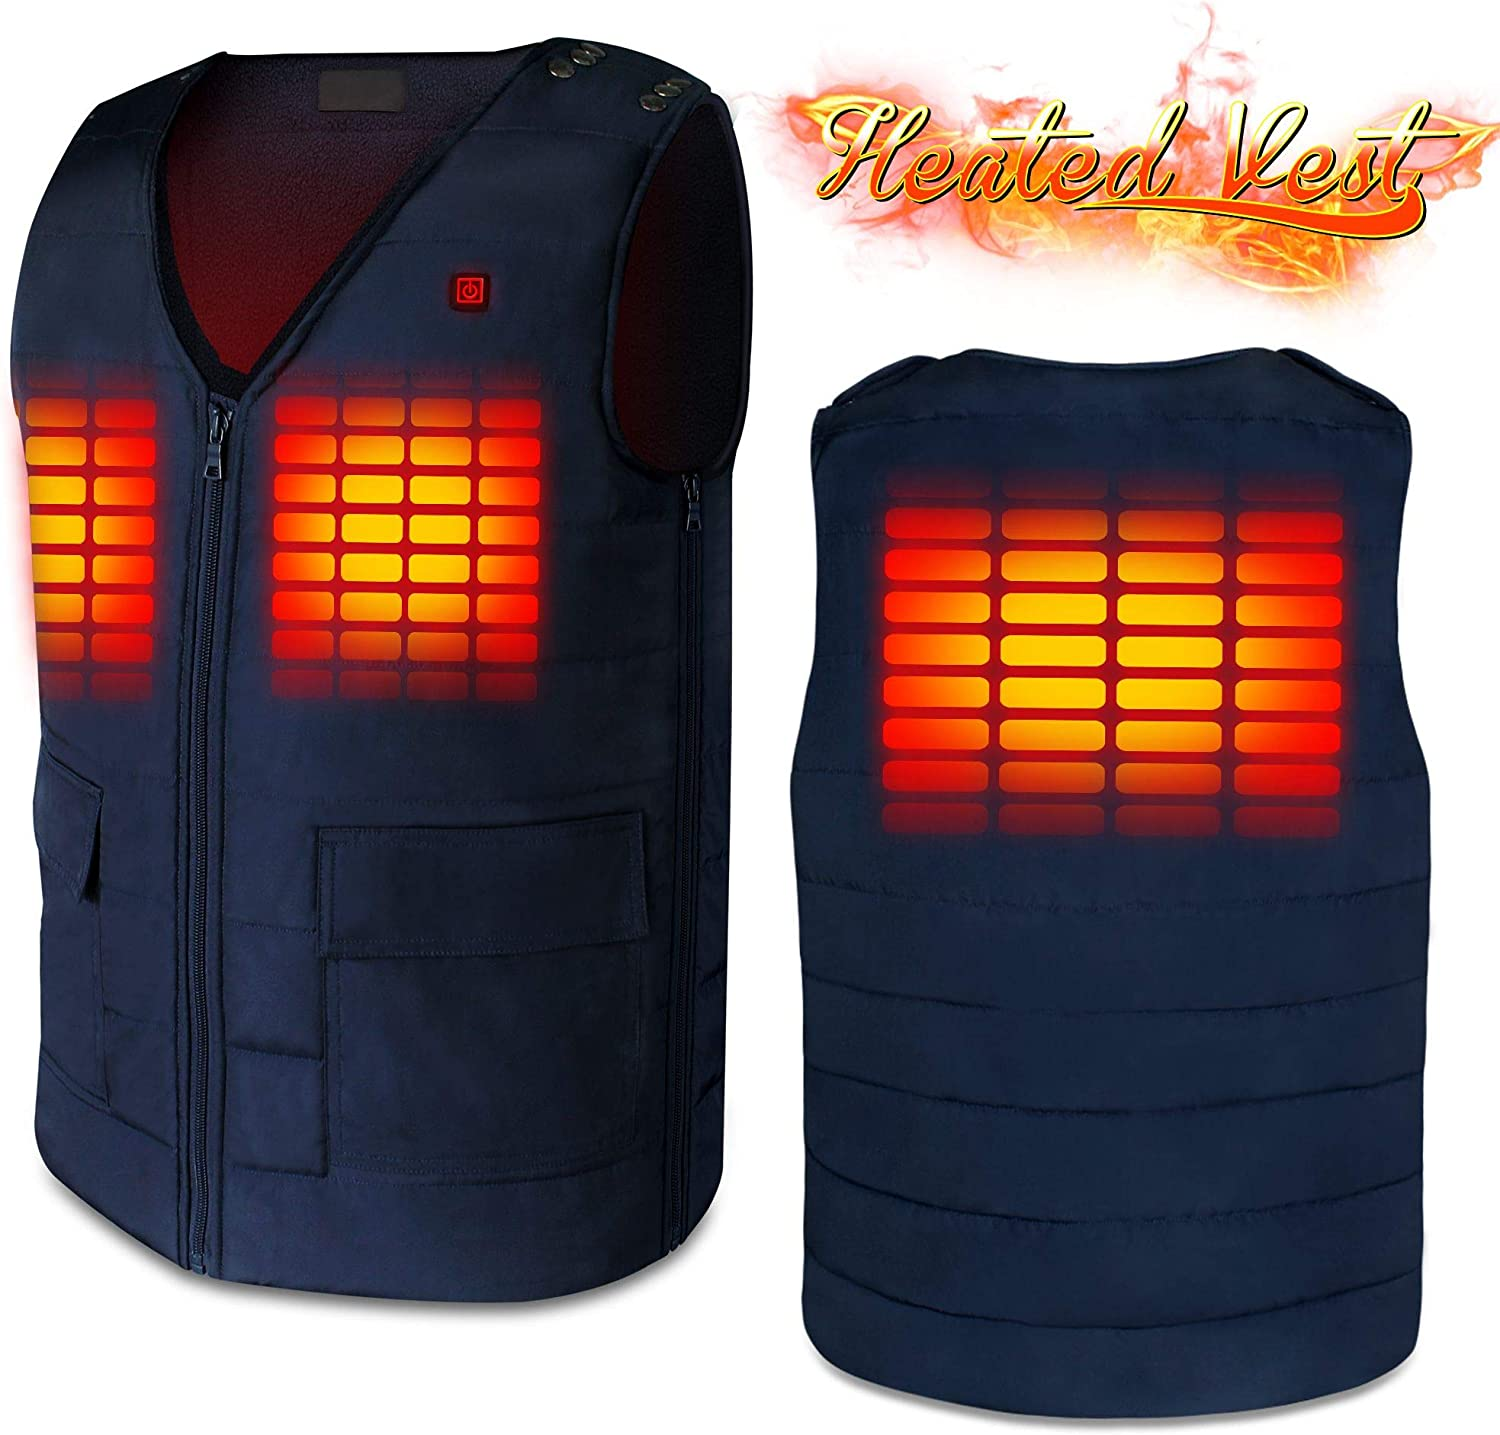 Men Woman Heated Vests with 7.4V Battery Pack,Adjustable Puffer Down Heating Jacket Vests Navy Blue